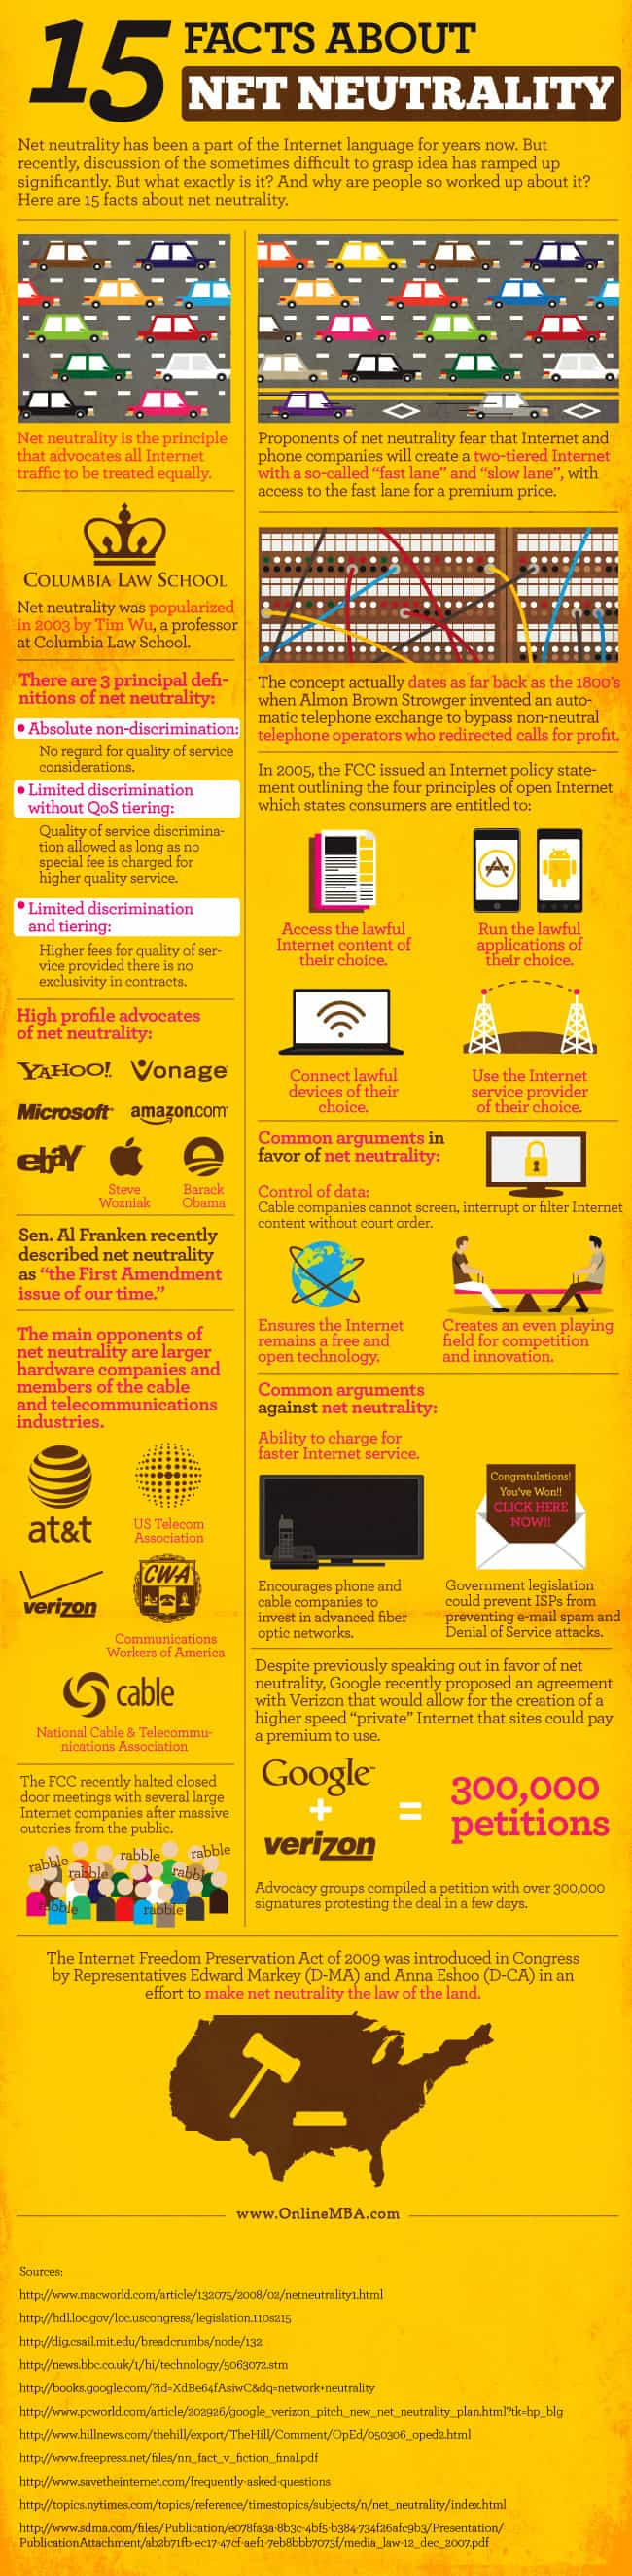 Infographic Net Neutrality >> What is Net Neutrality? 15 Facts about Net Neutrality